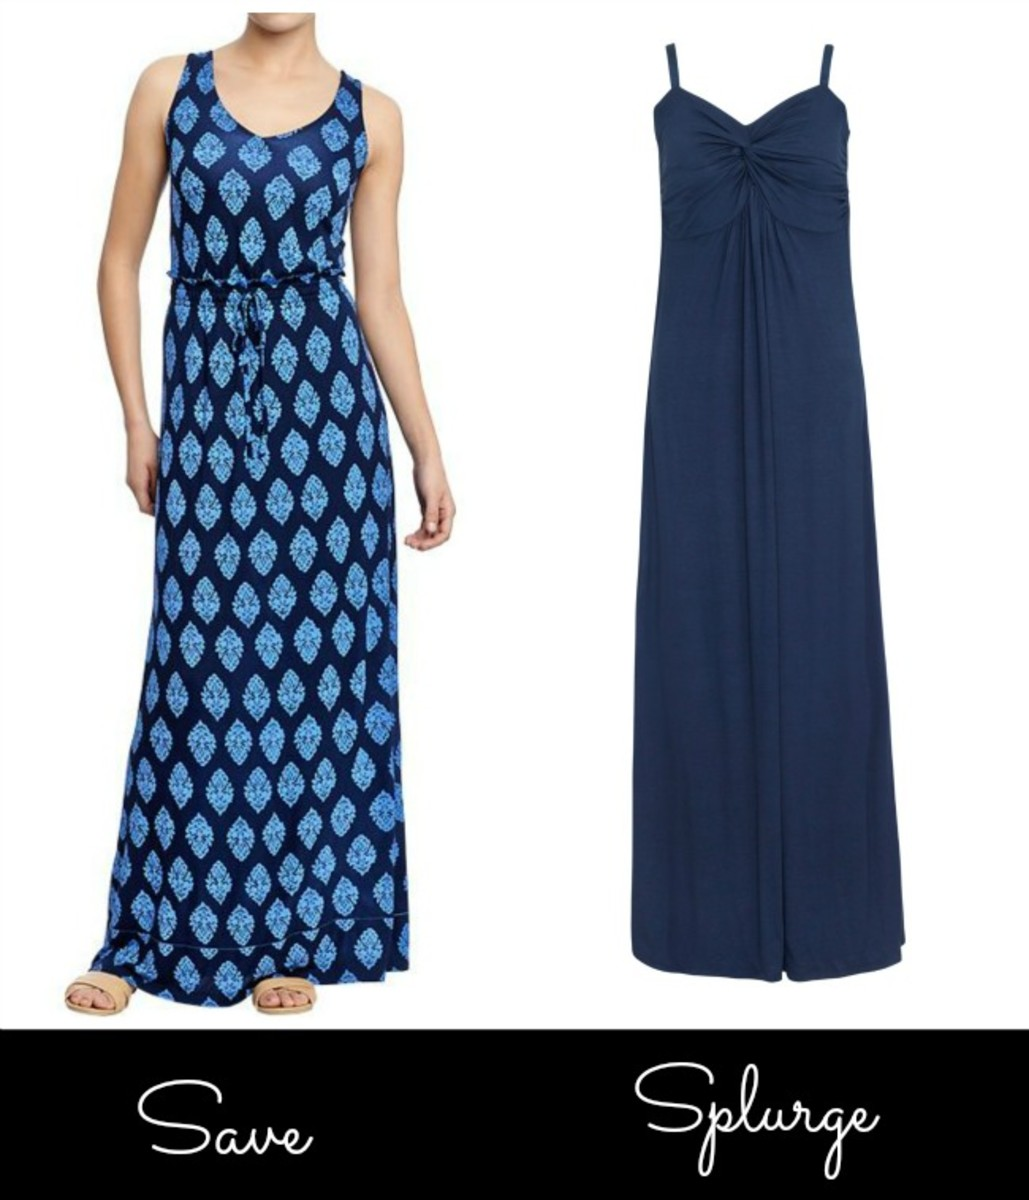 bluemaxidresses